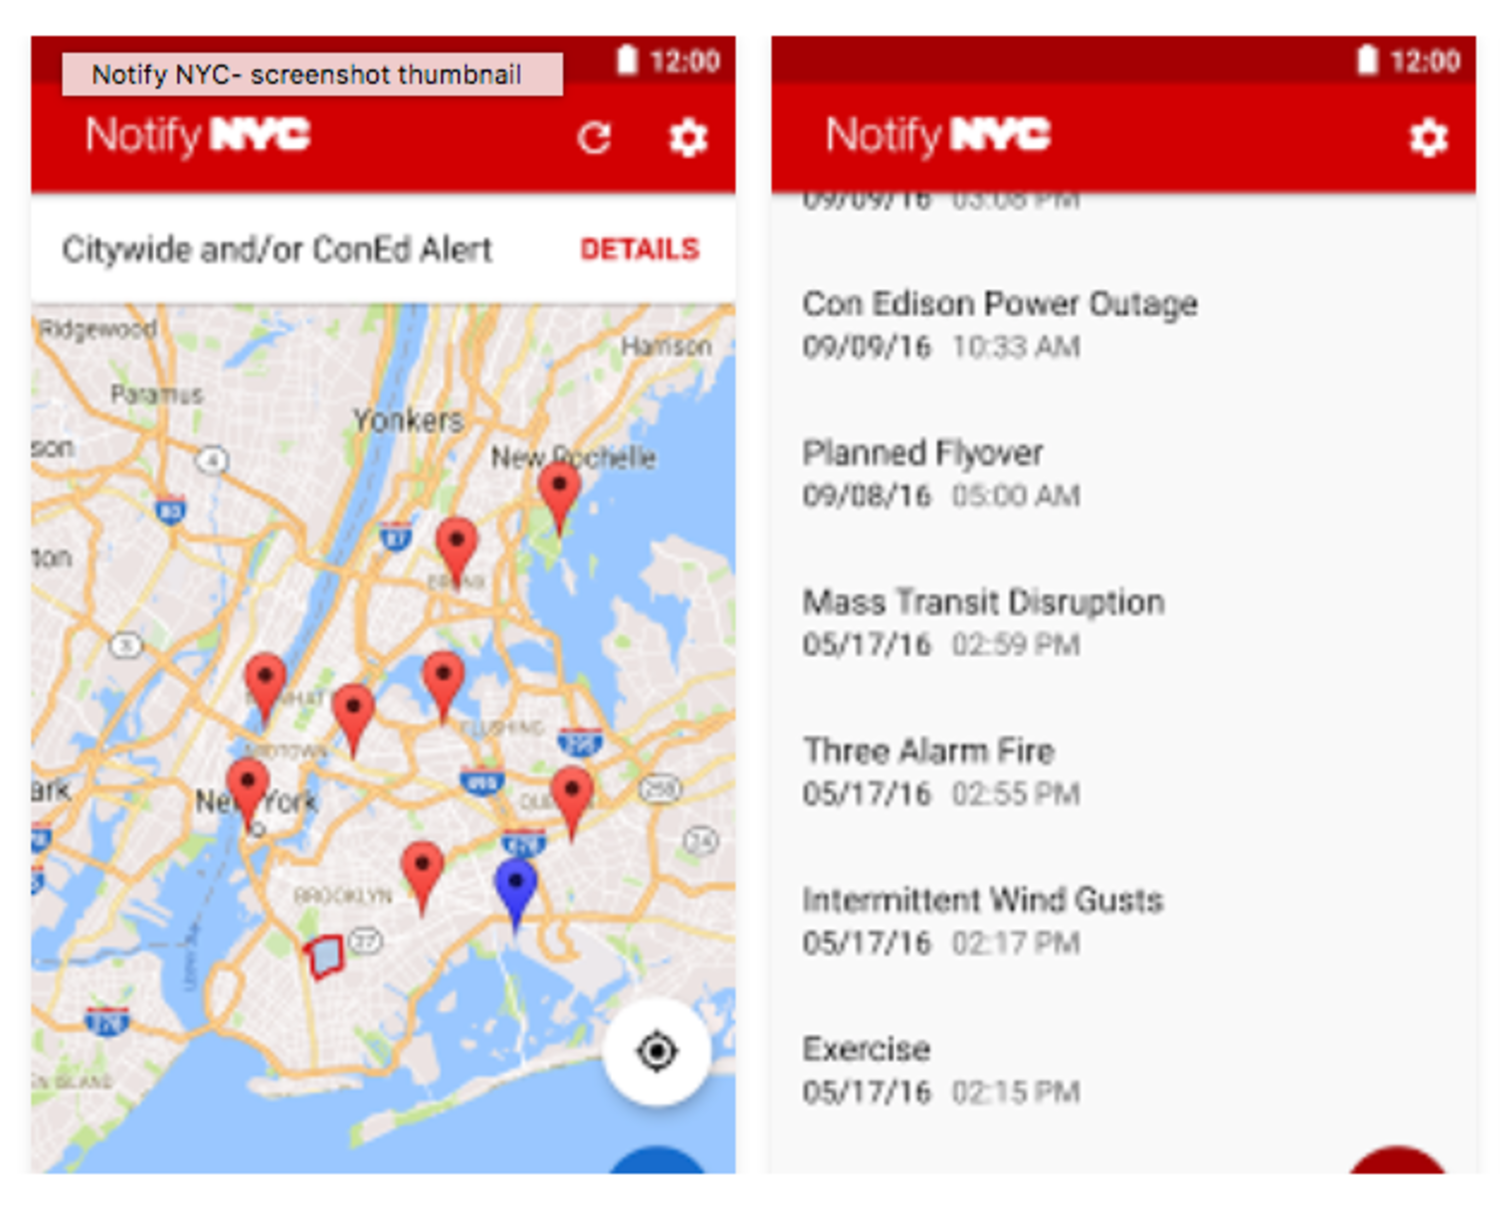 NotifyNYC Android App